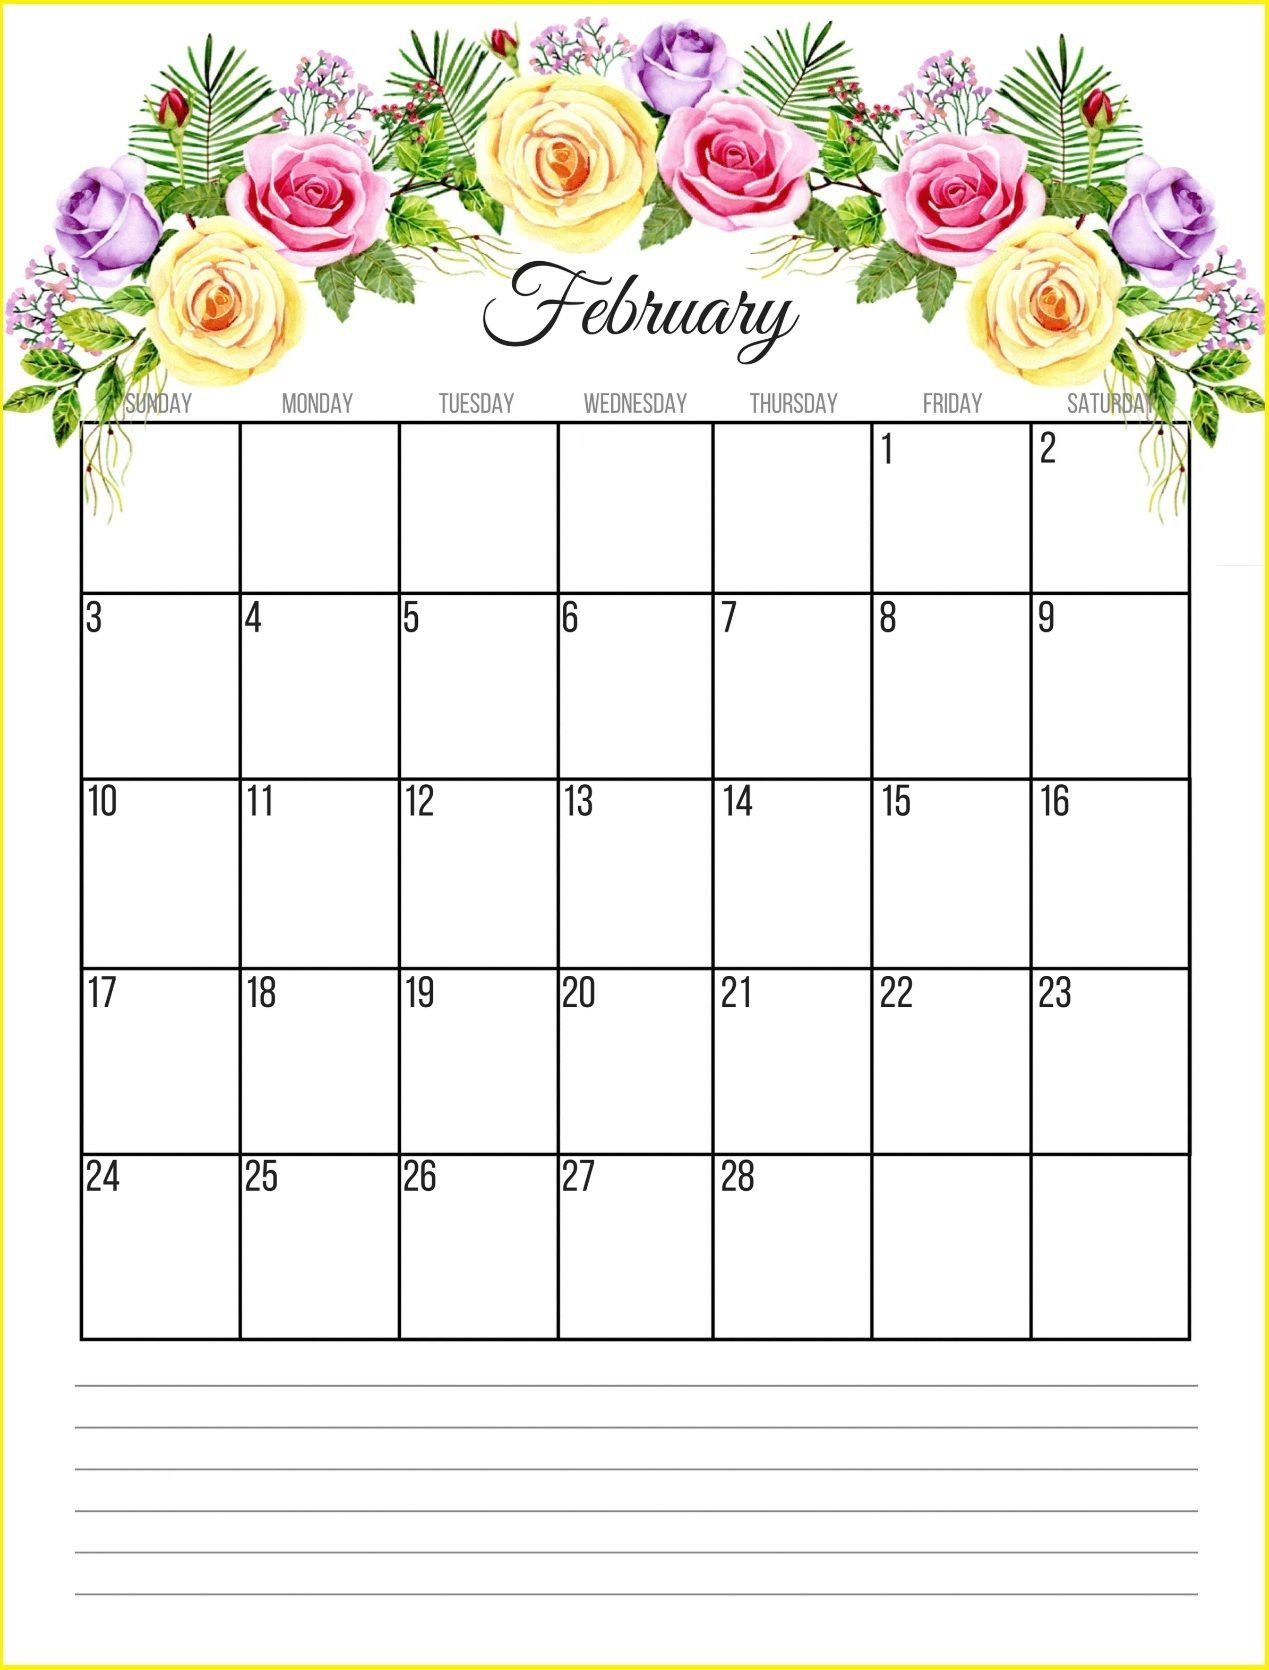 floral february 2019 calendar monthly templates free download hd::Blank February 2019 Calendar